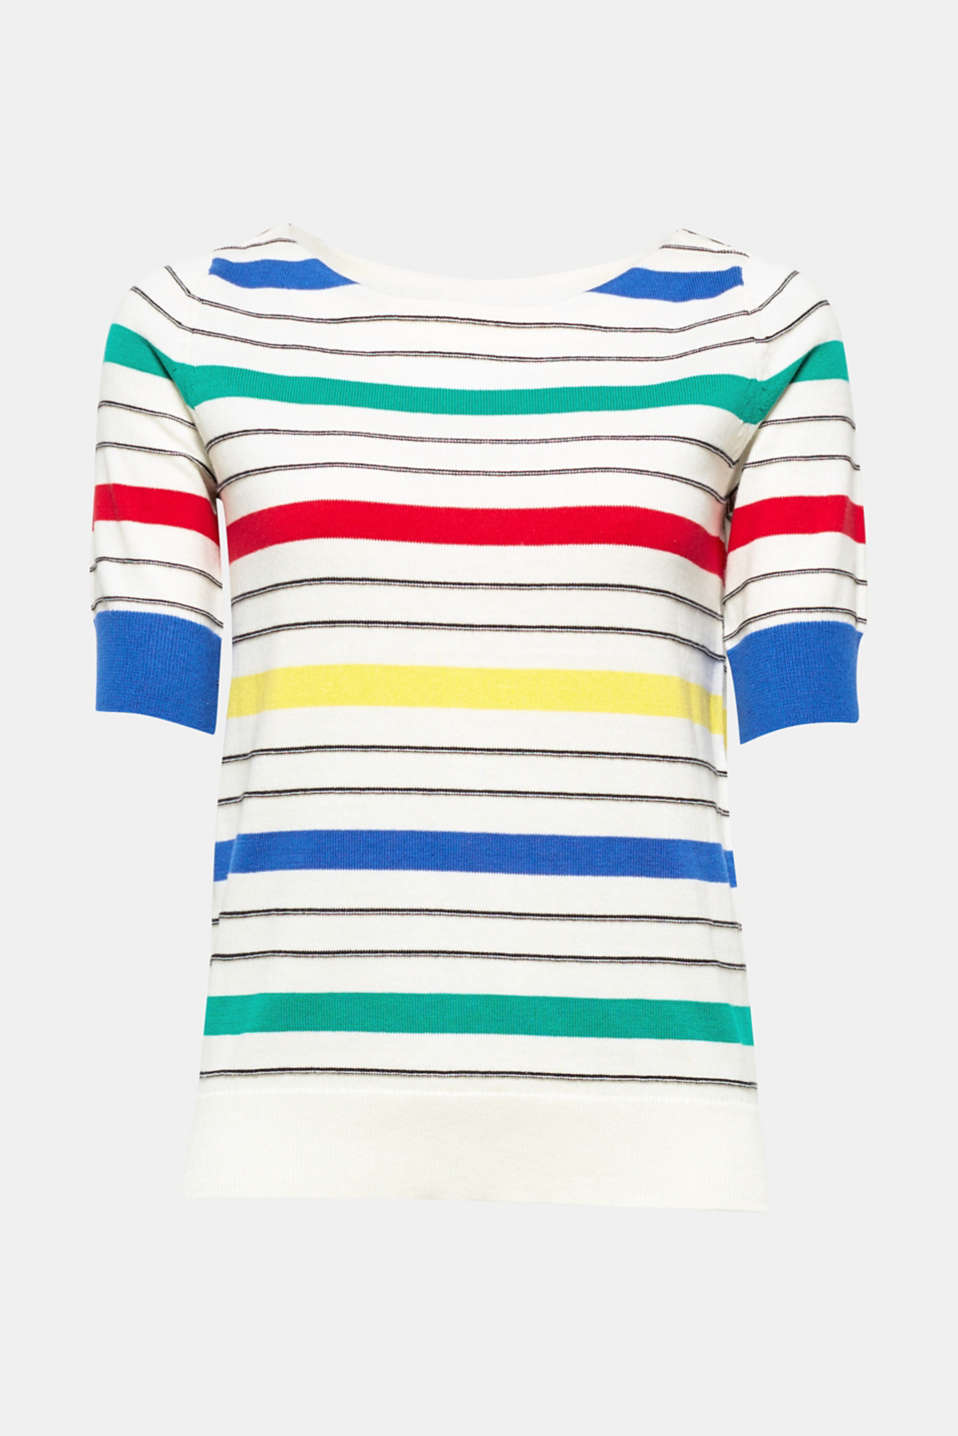 We love colour! The vibrant stripes make this fine-knit cotton jumper a light and airy fave.